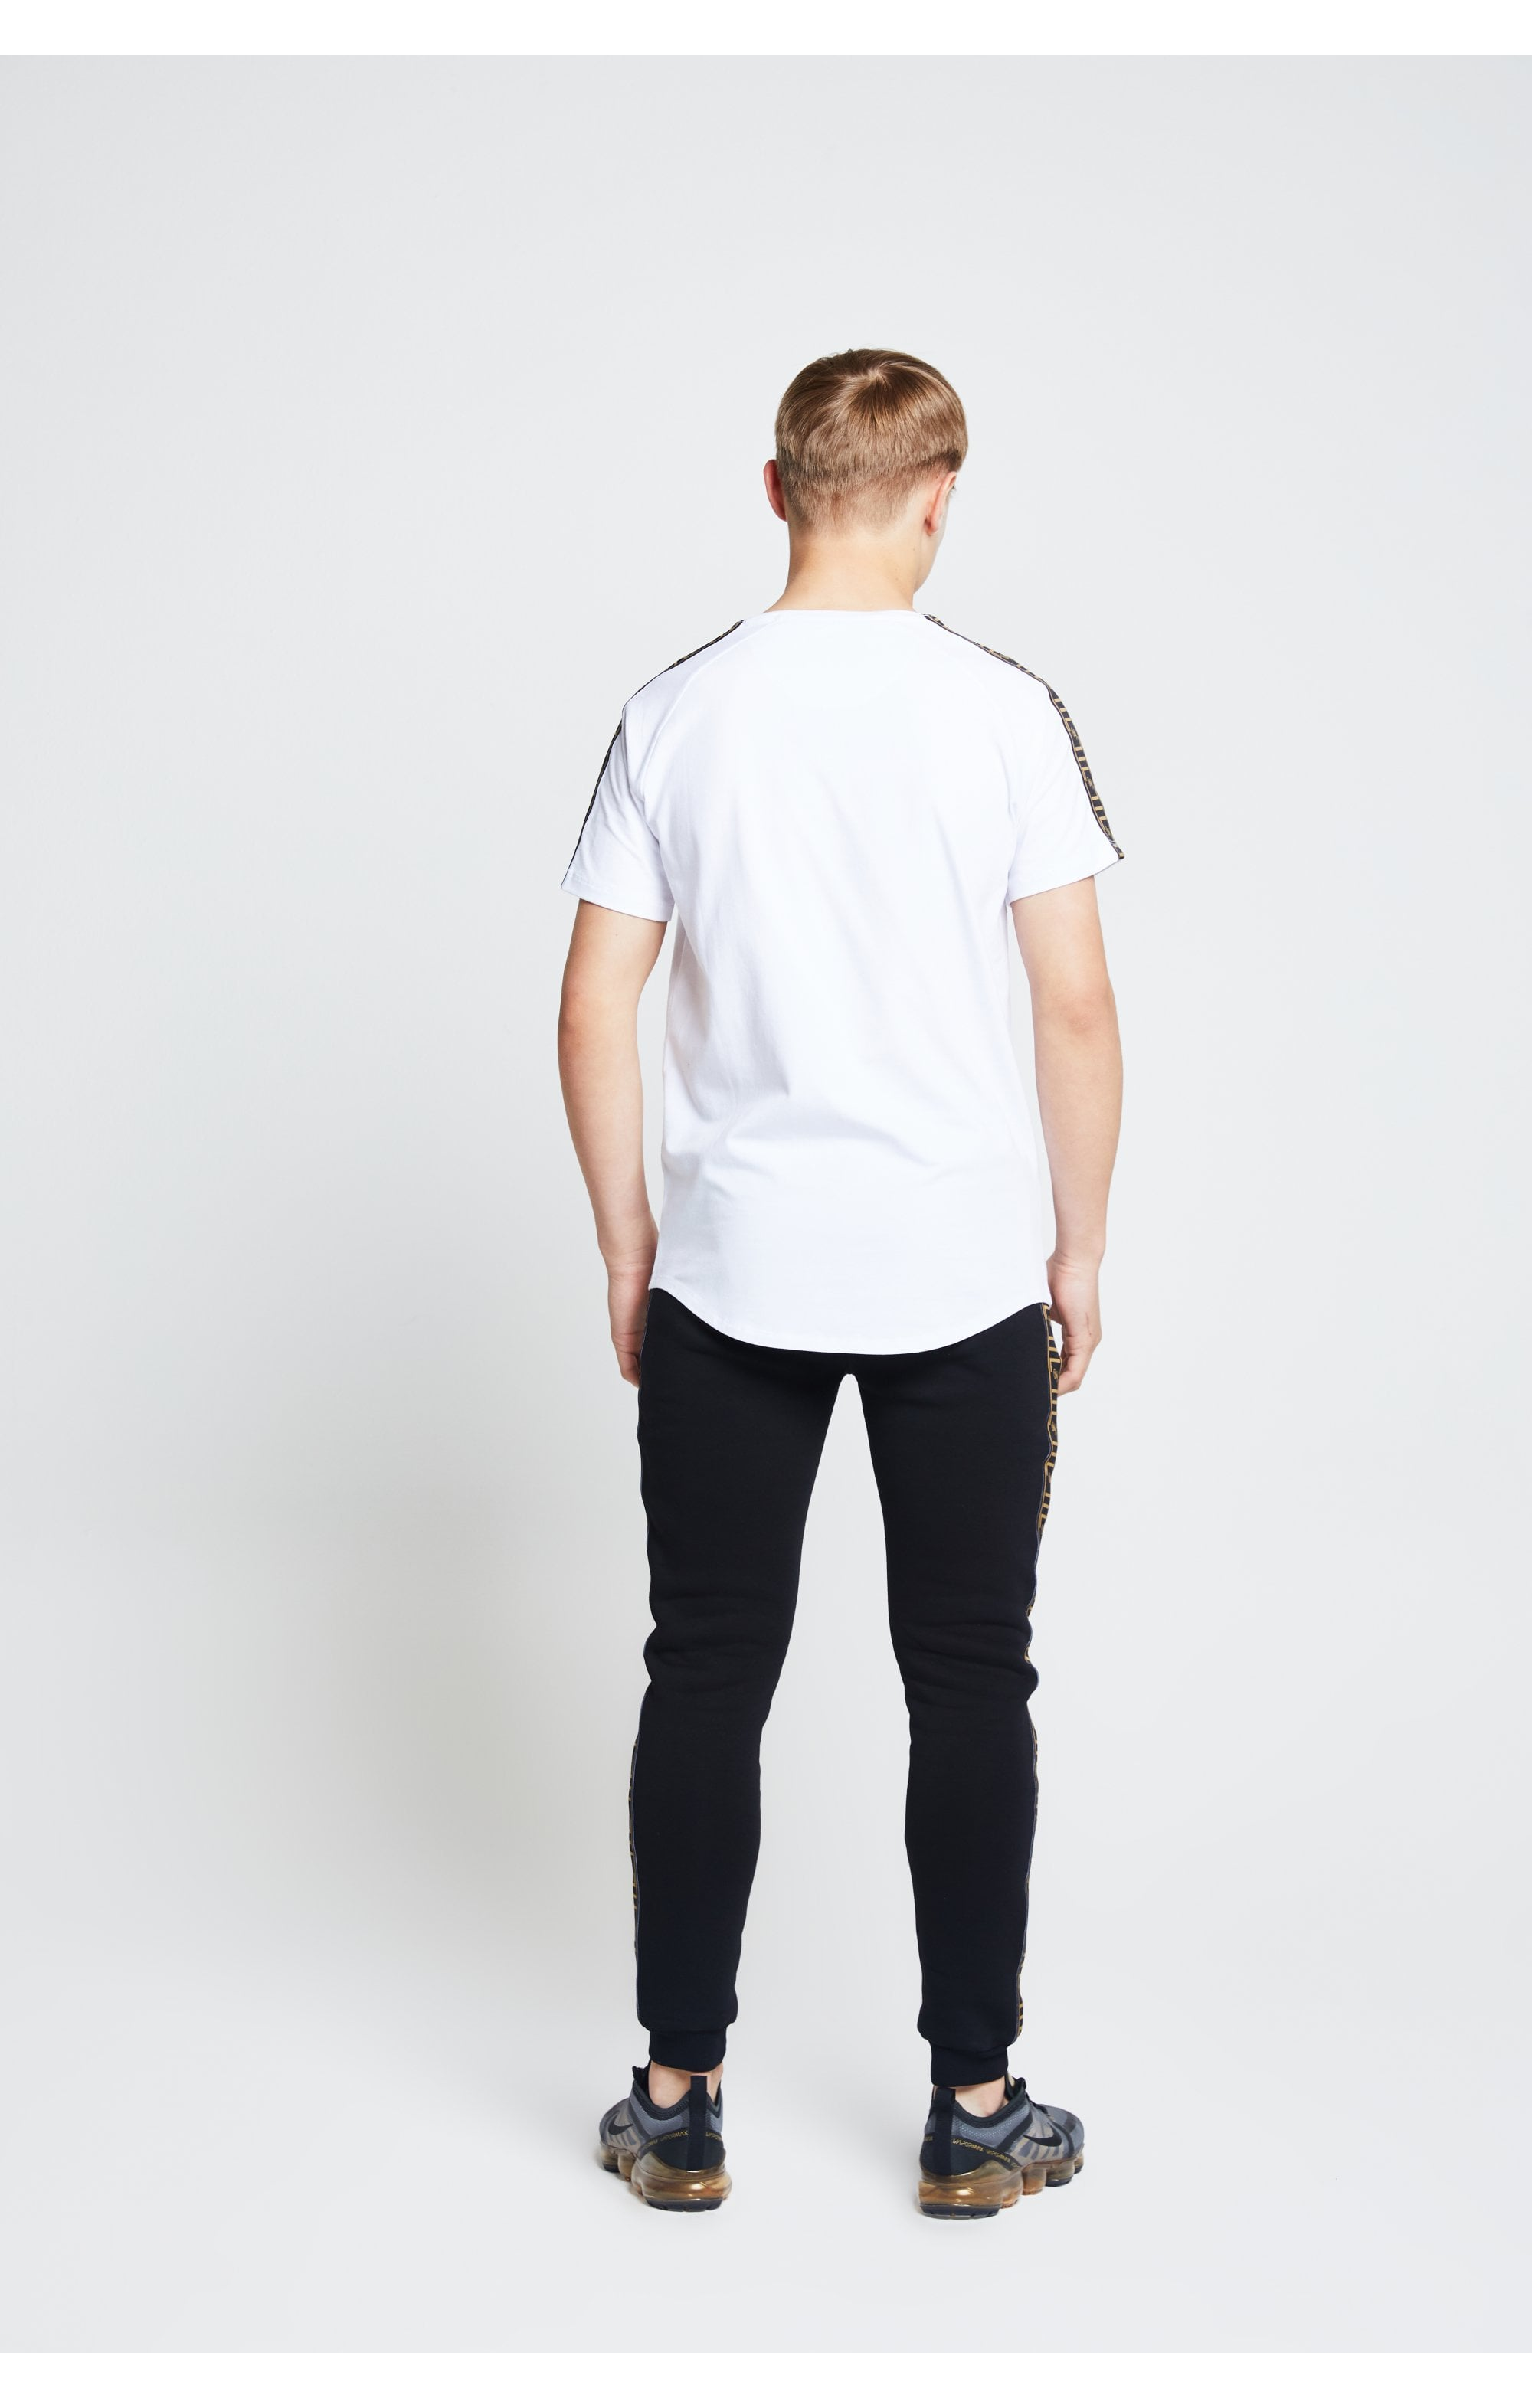 Illusive London S/S Taped Raglan Tee – White (4)